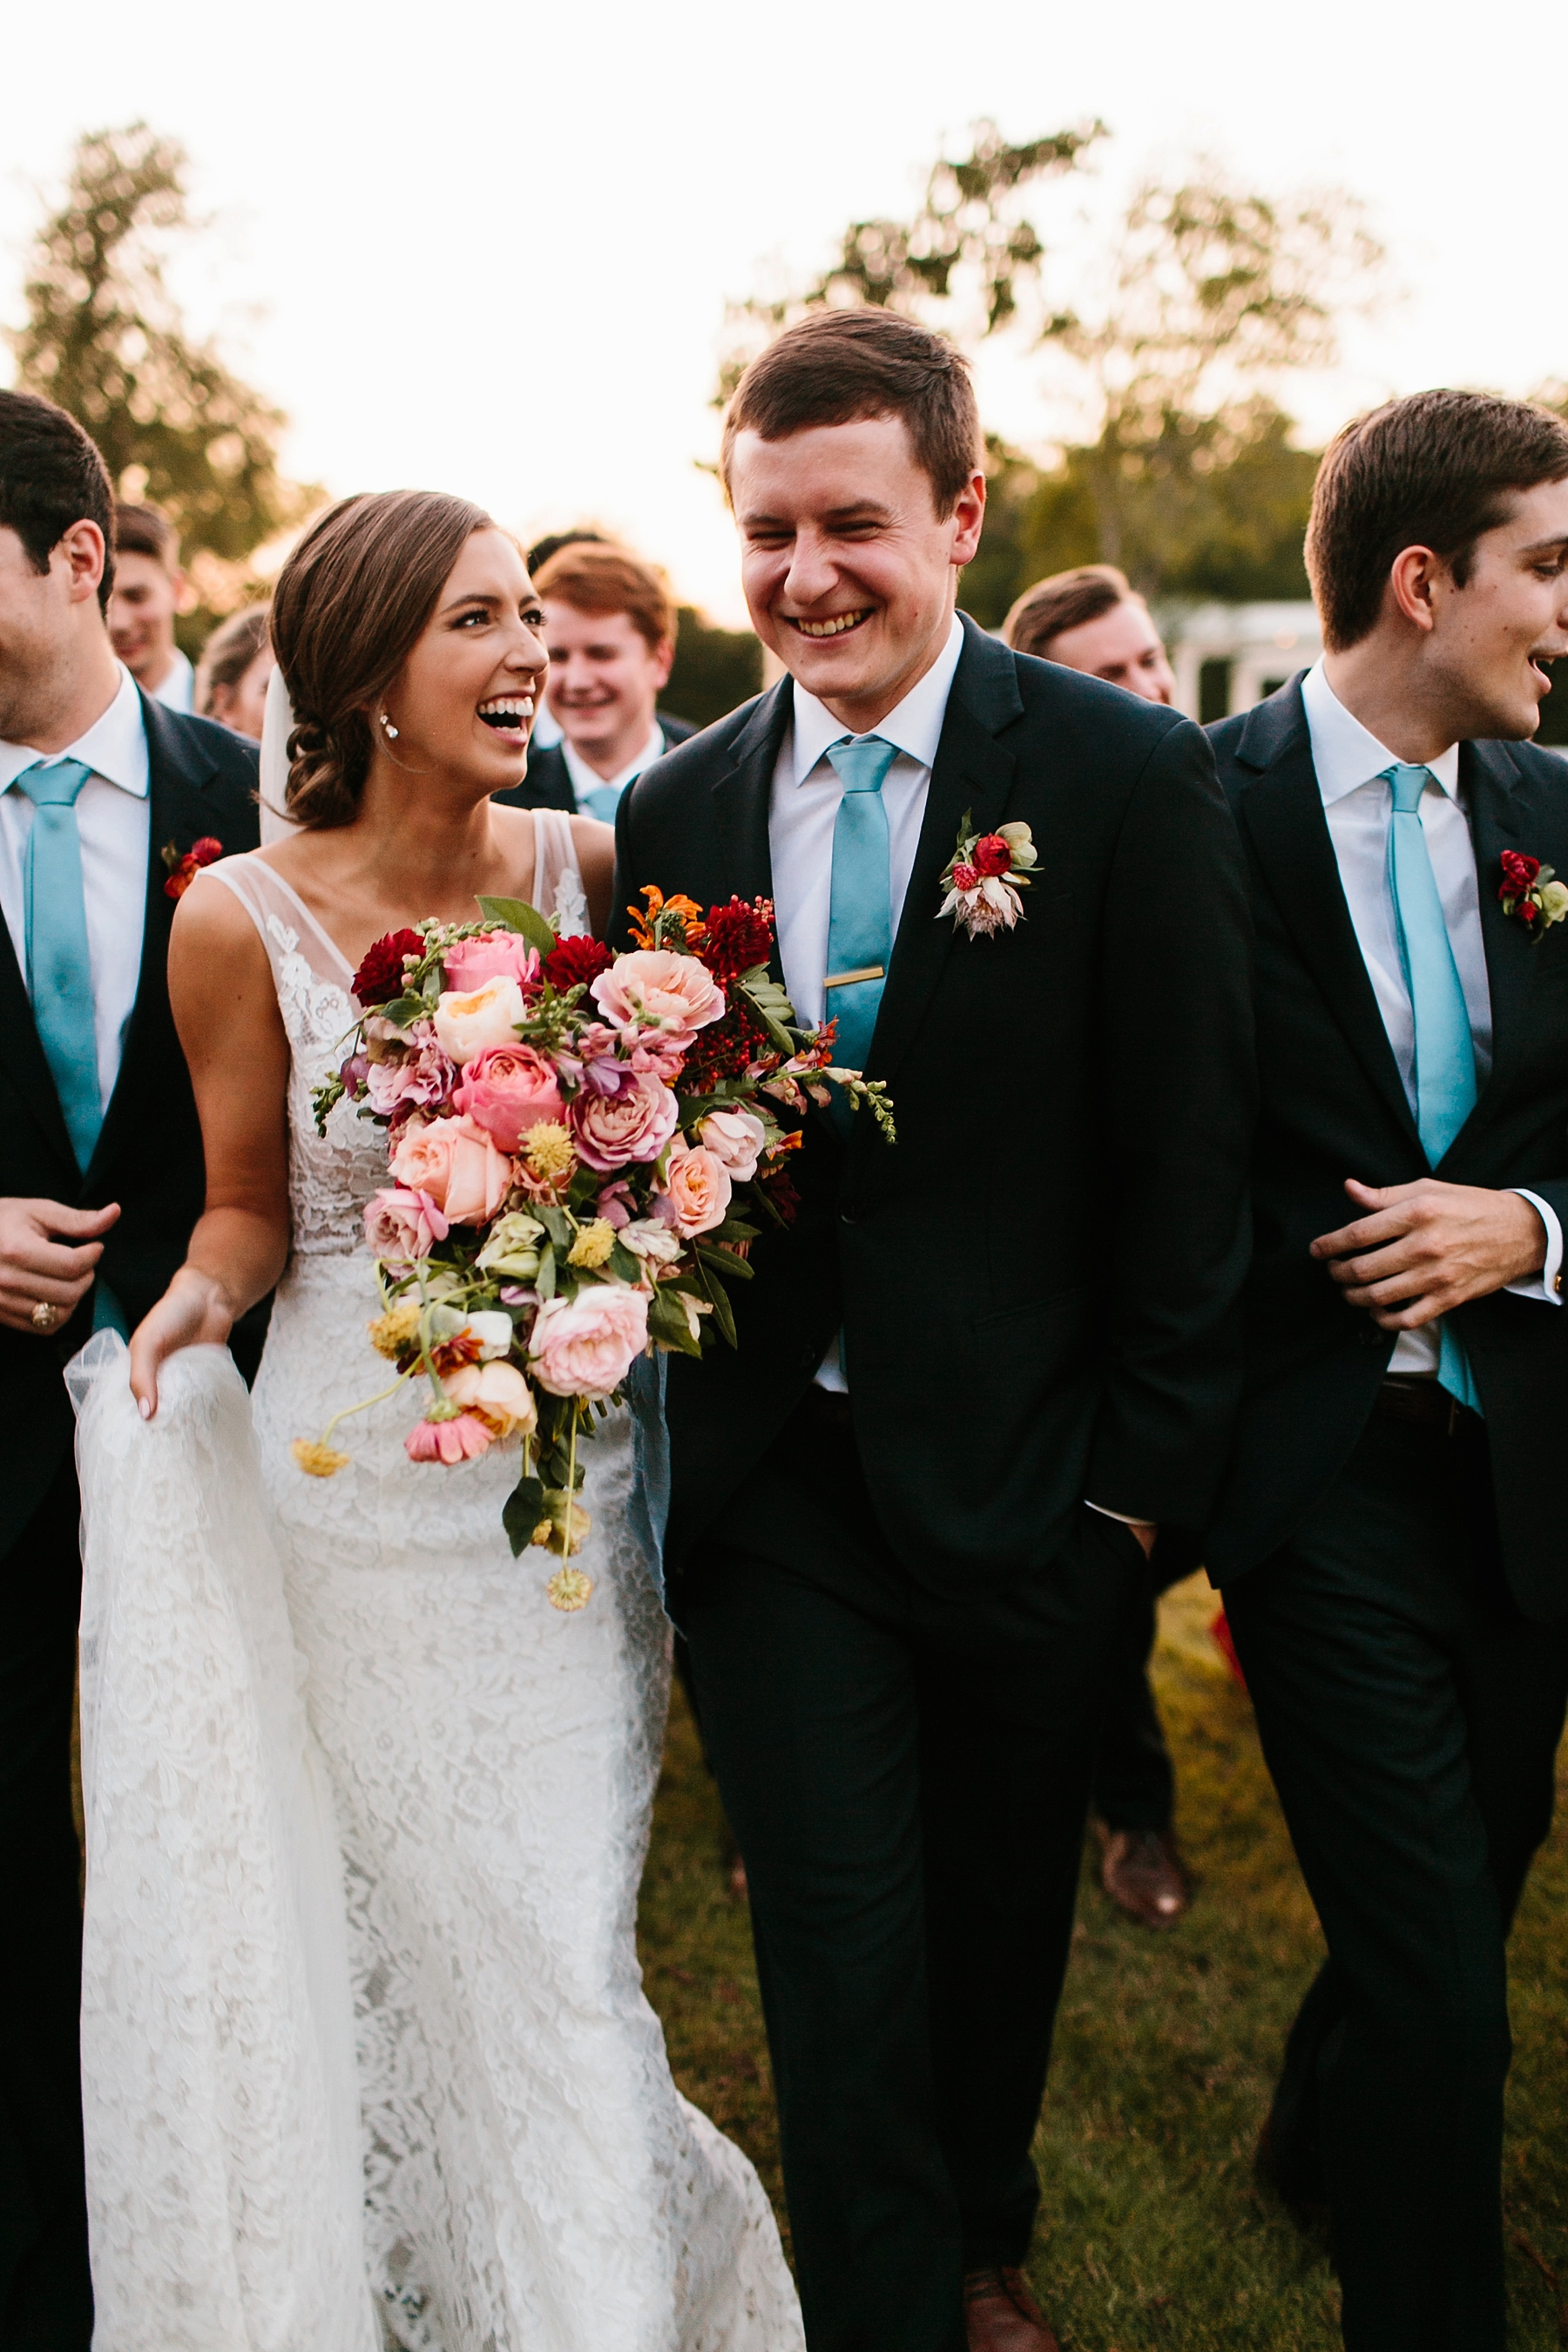 Lauren + Nathan _ a vibrant, wedding with a Navy, Red, and Duck Egg Blue Pallete at Firefly Gardens by North Texas Wedding Photographer Rachel Meagan Photography _ 126